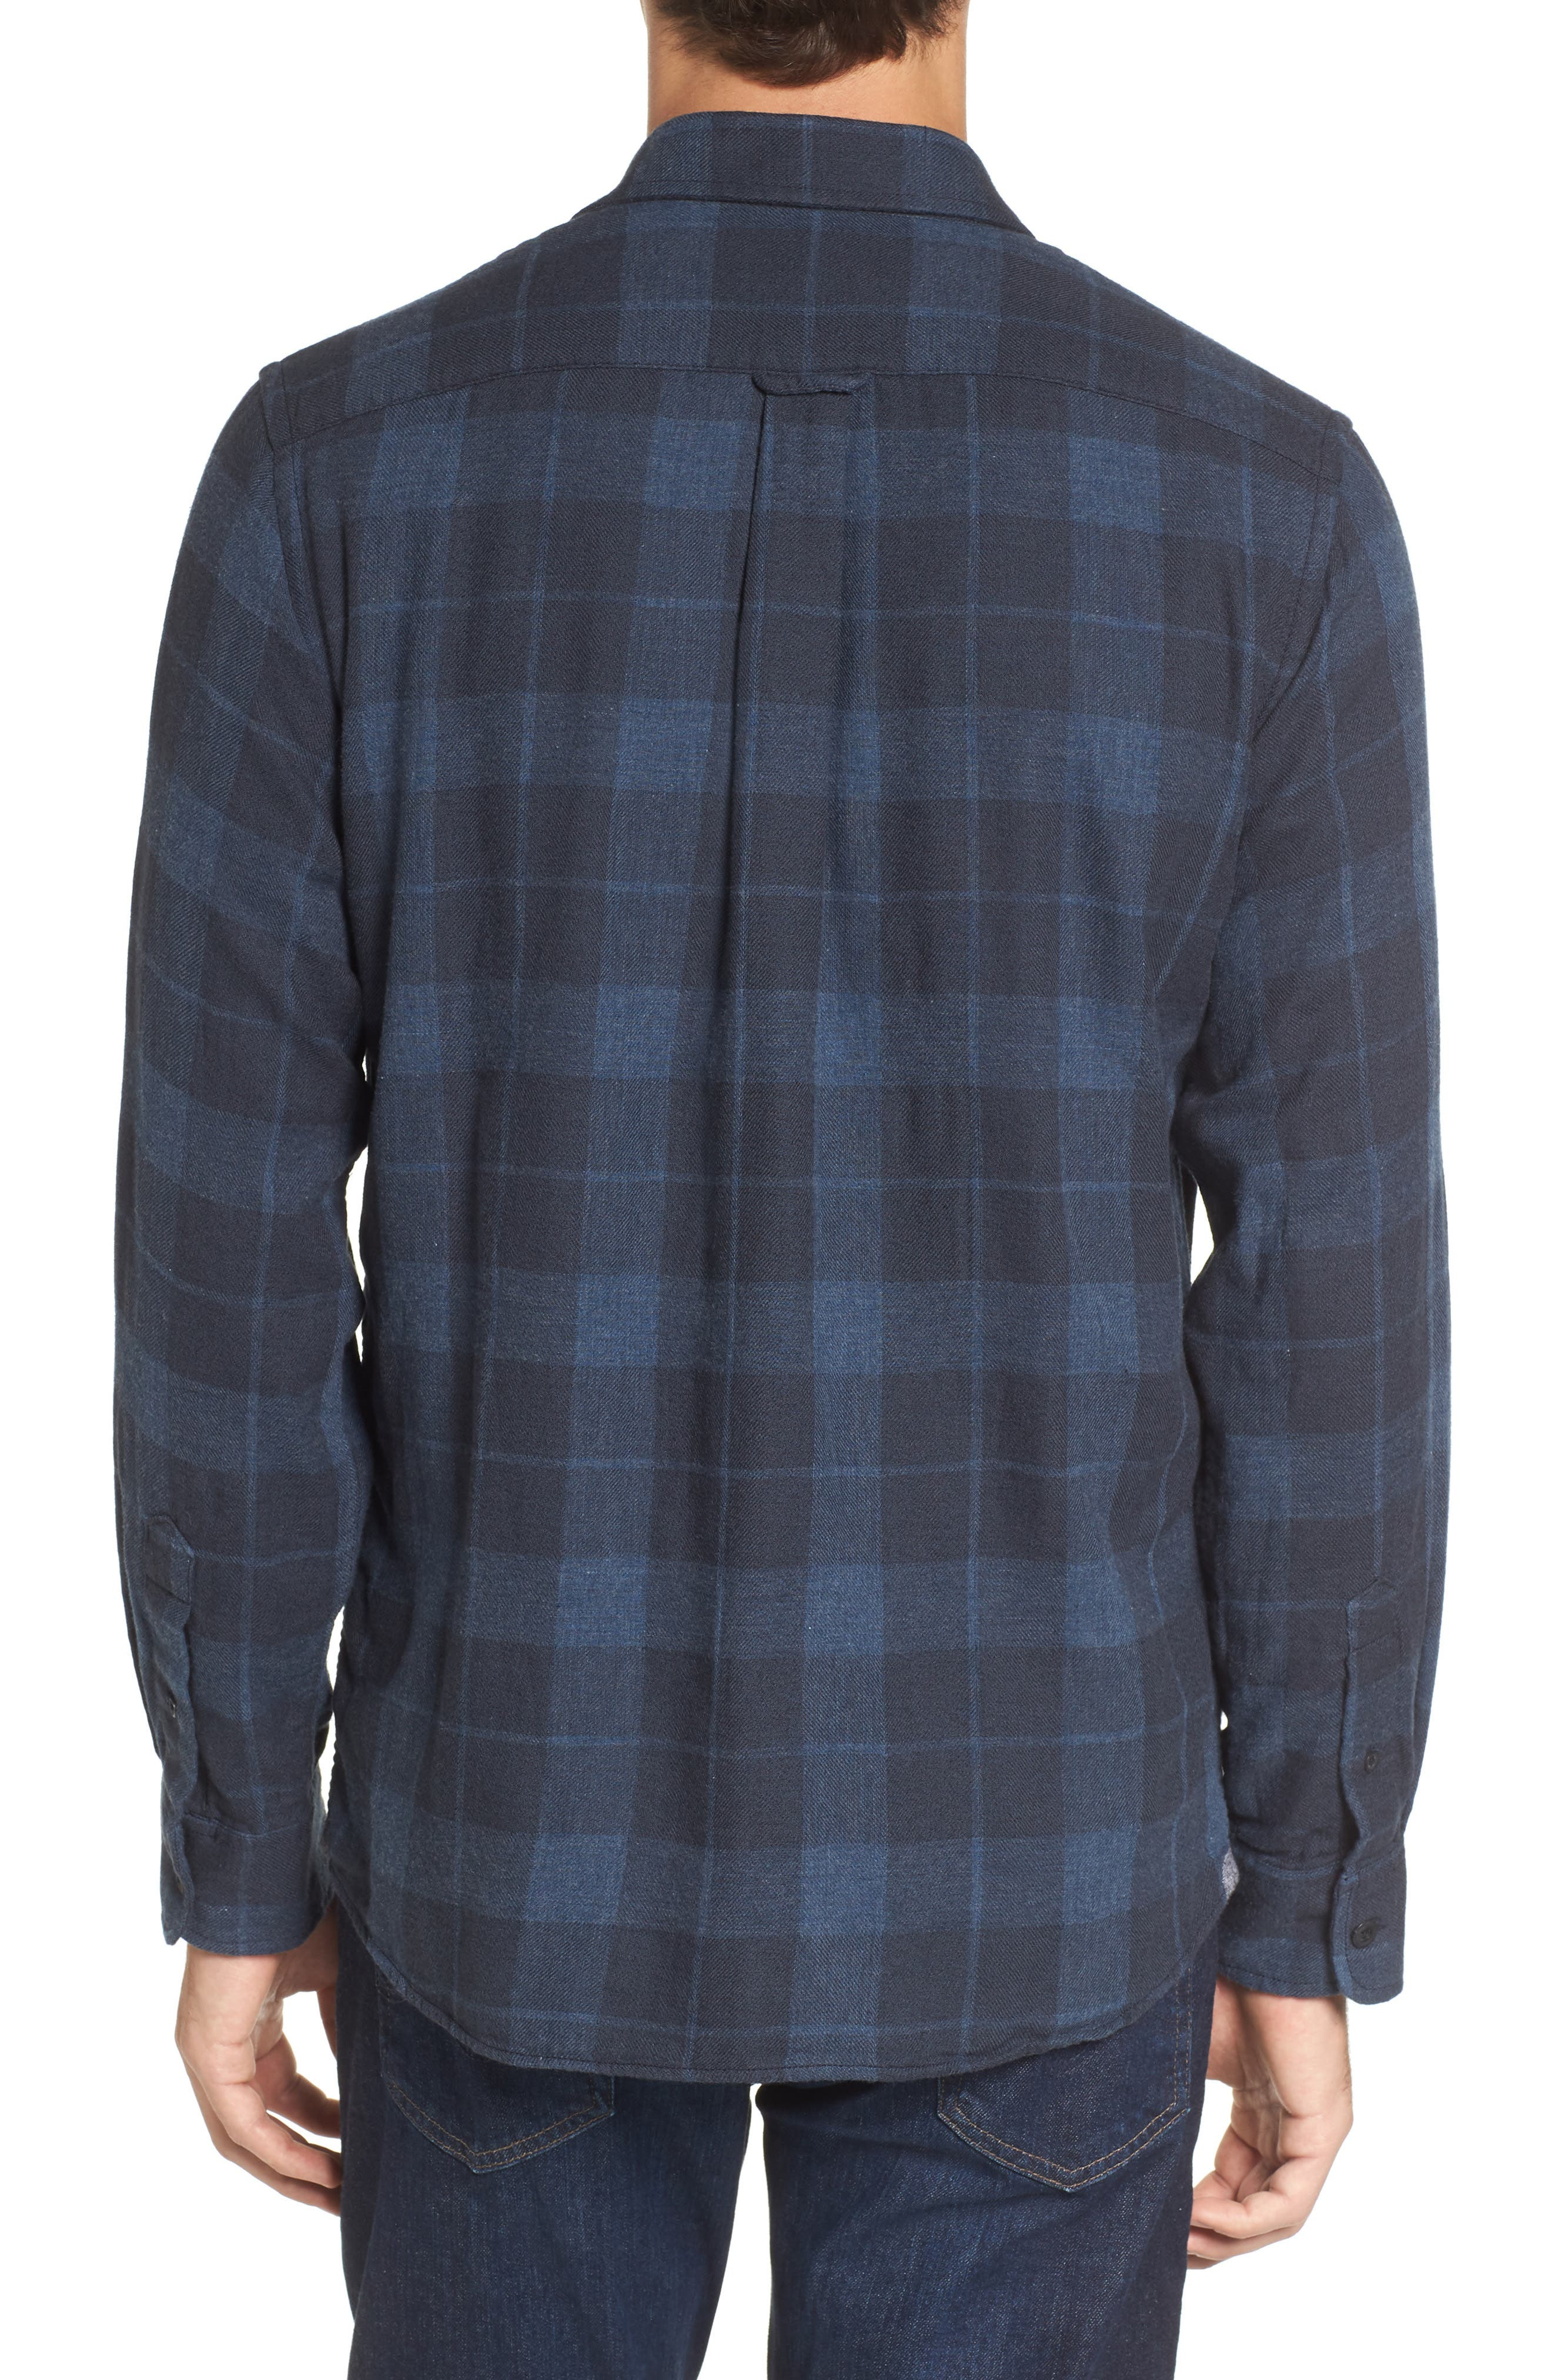 Helsby Double Cloth Plaid Sport Shirt,                             Alternate thumbnail 2, color,                             Charcoal Navy Heather